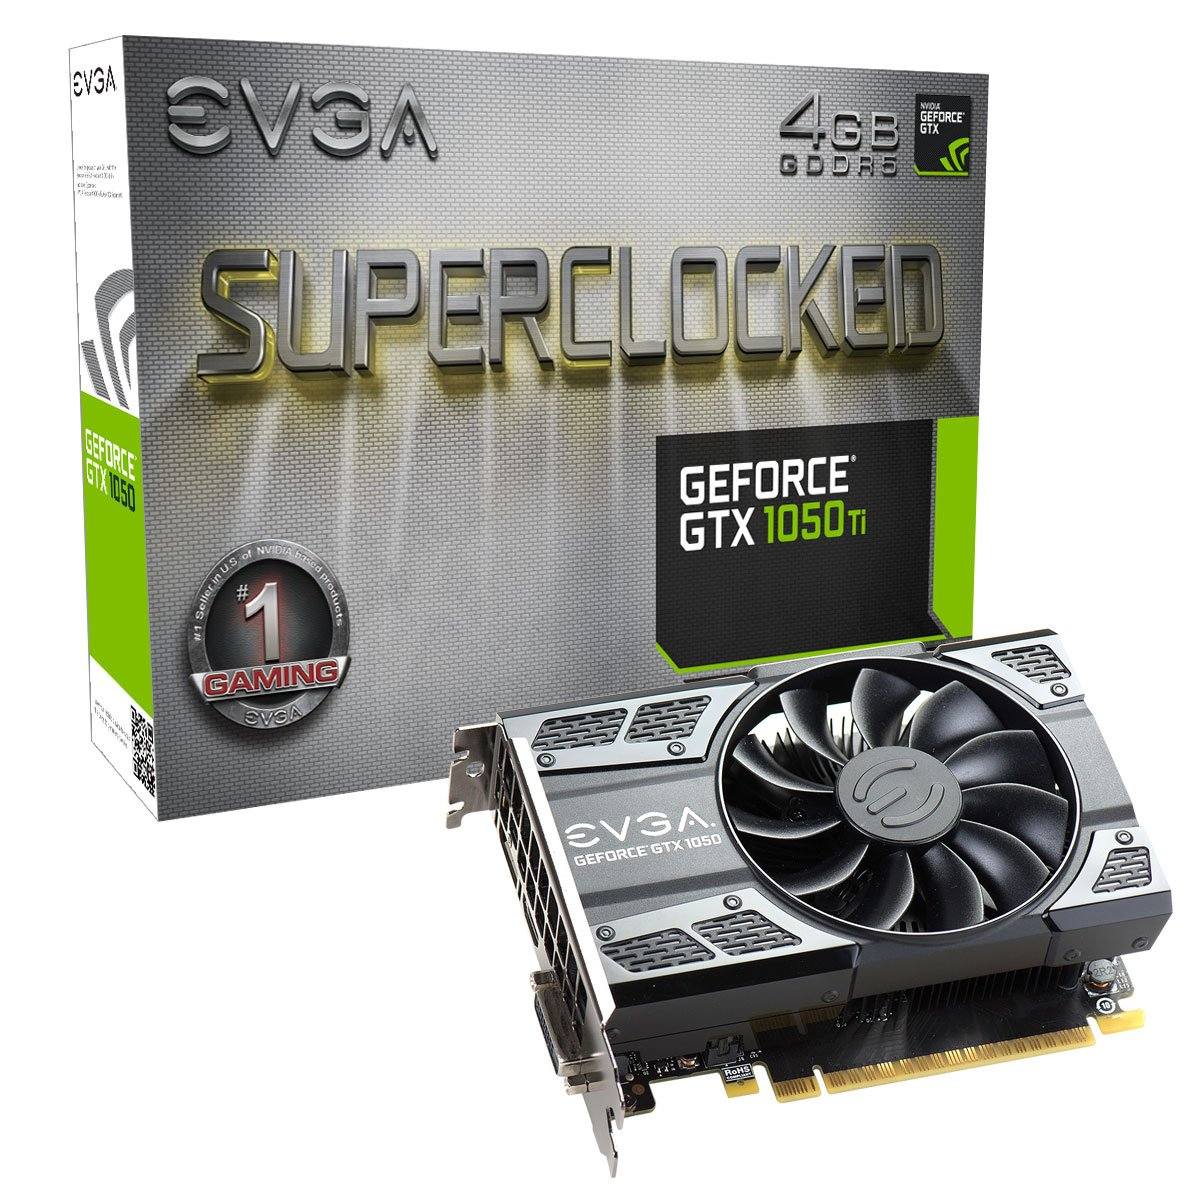 Nvidia GeForce GTX 1050 Black Friday Deal